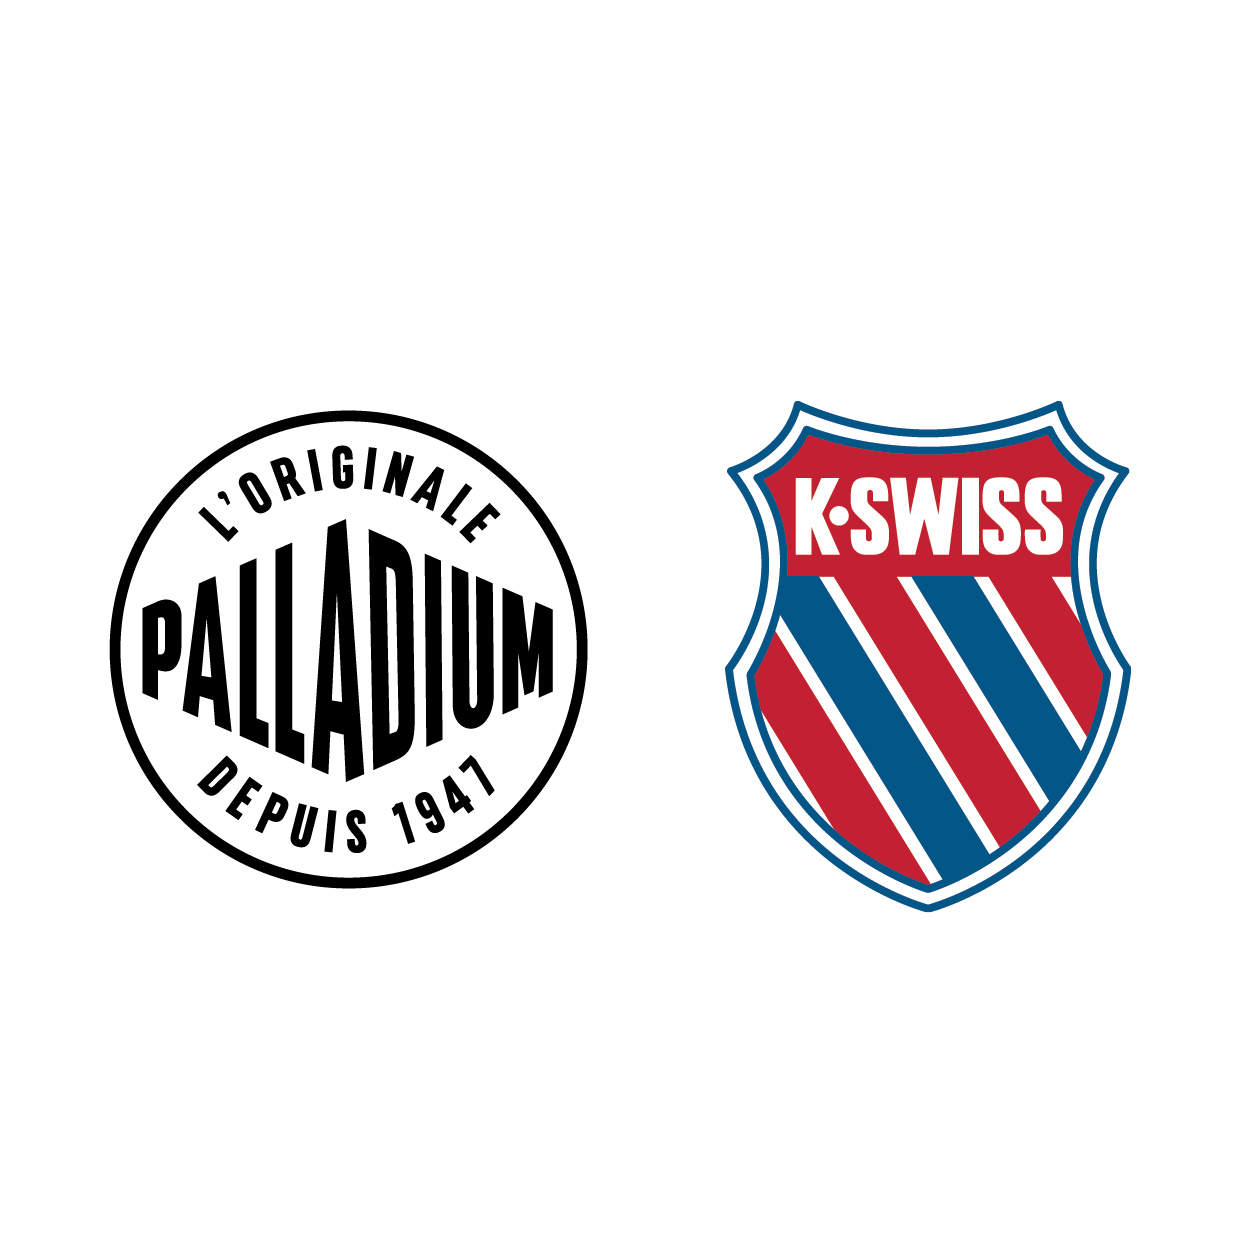 K-SWISS & PALLADIUM